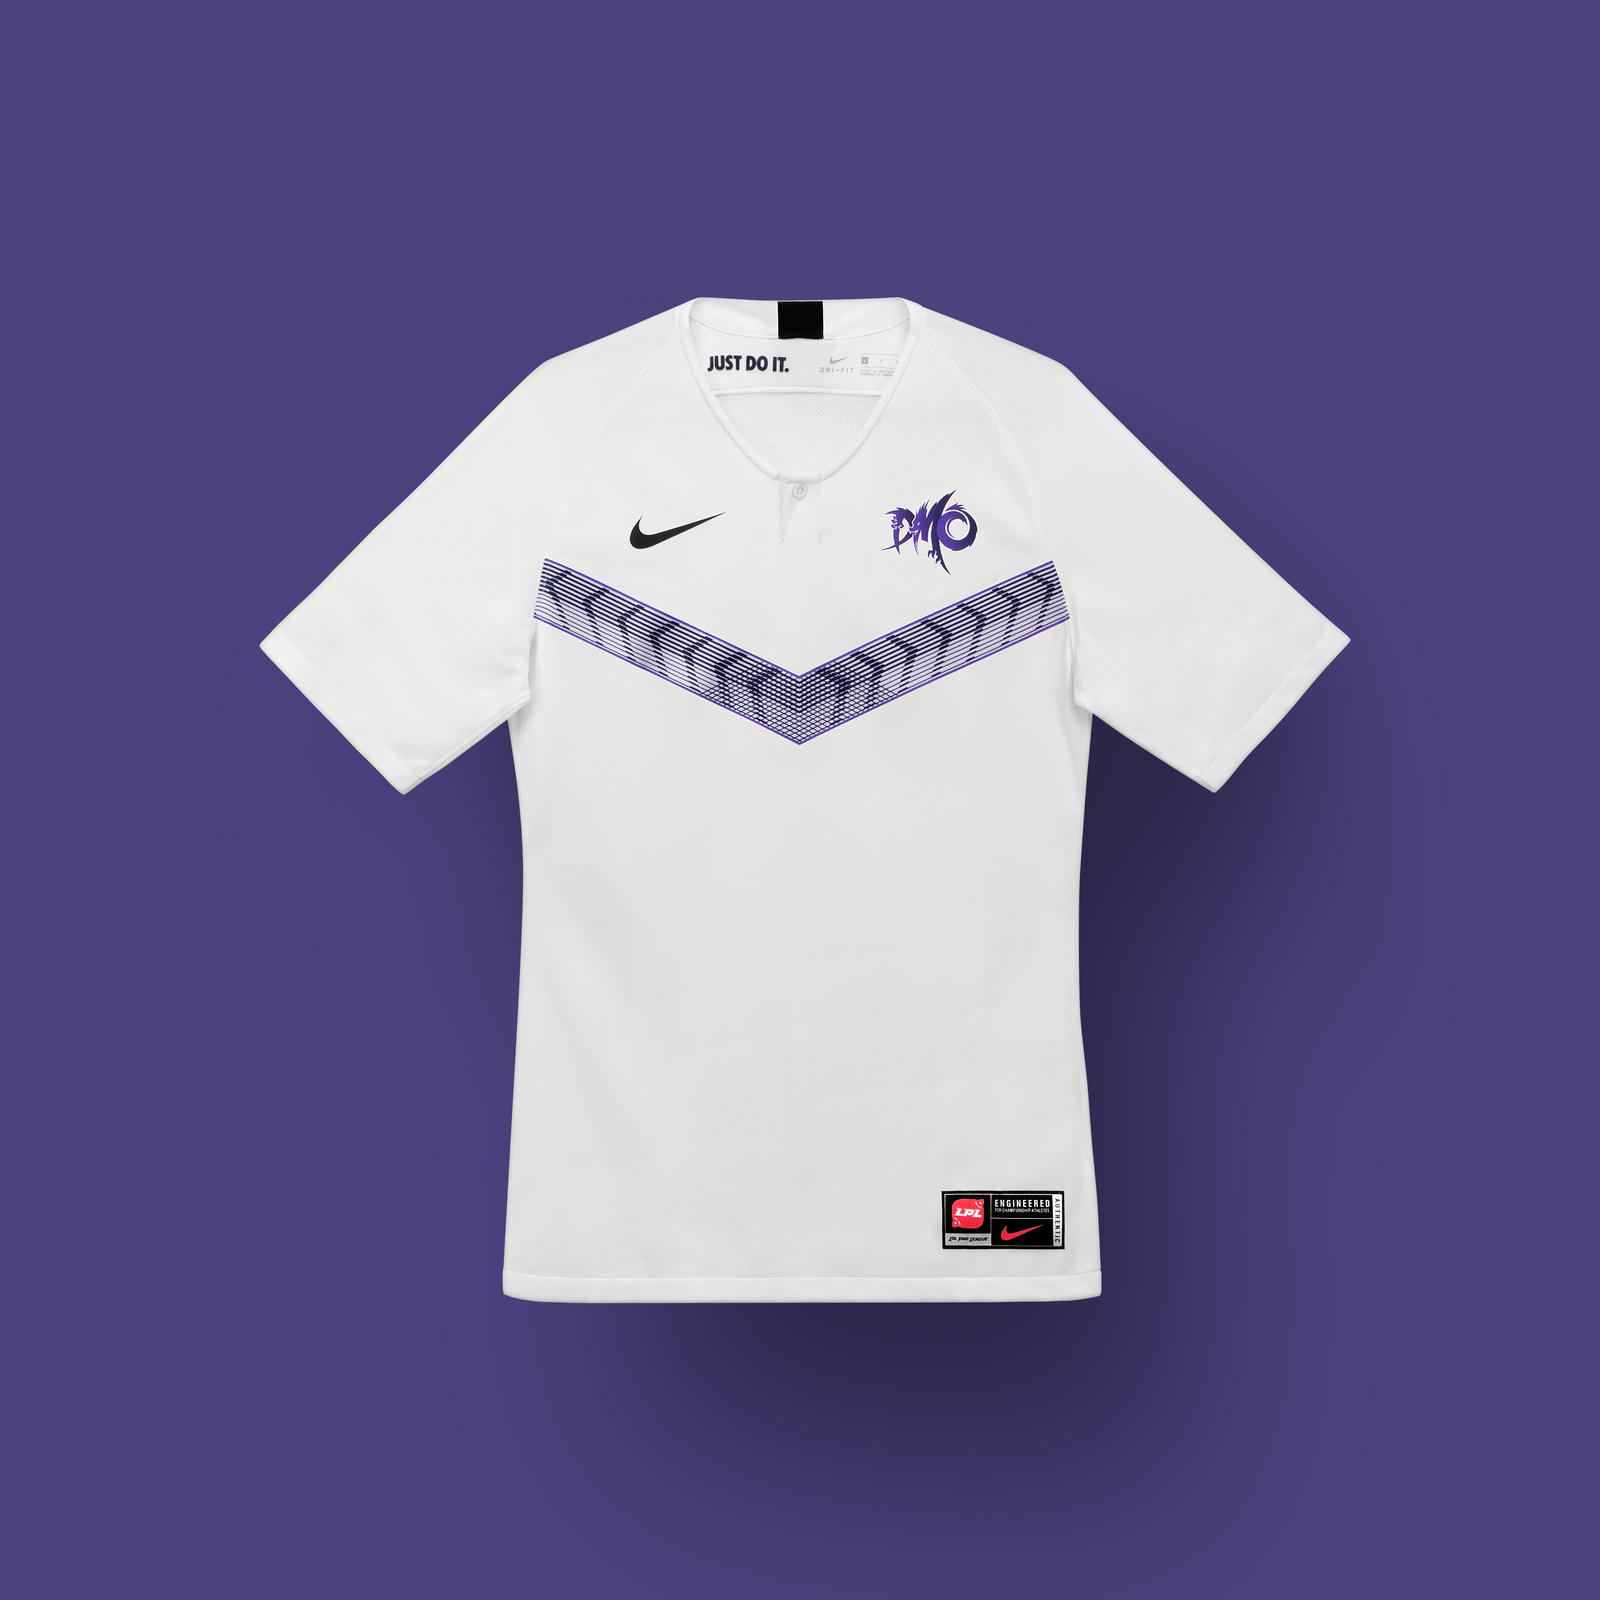 Nike League of Legends Pro League Team Kits 2019-20 Official Images 43